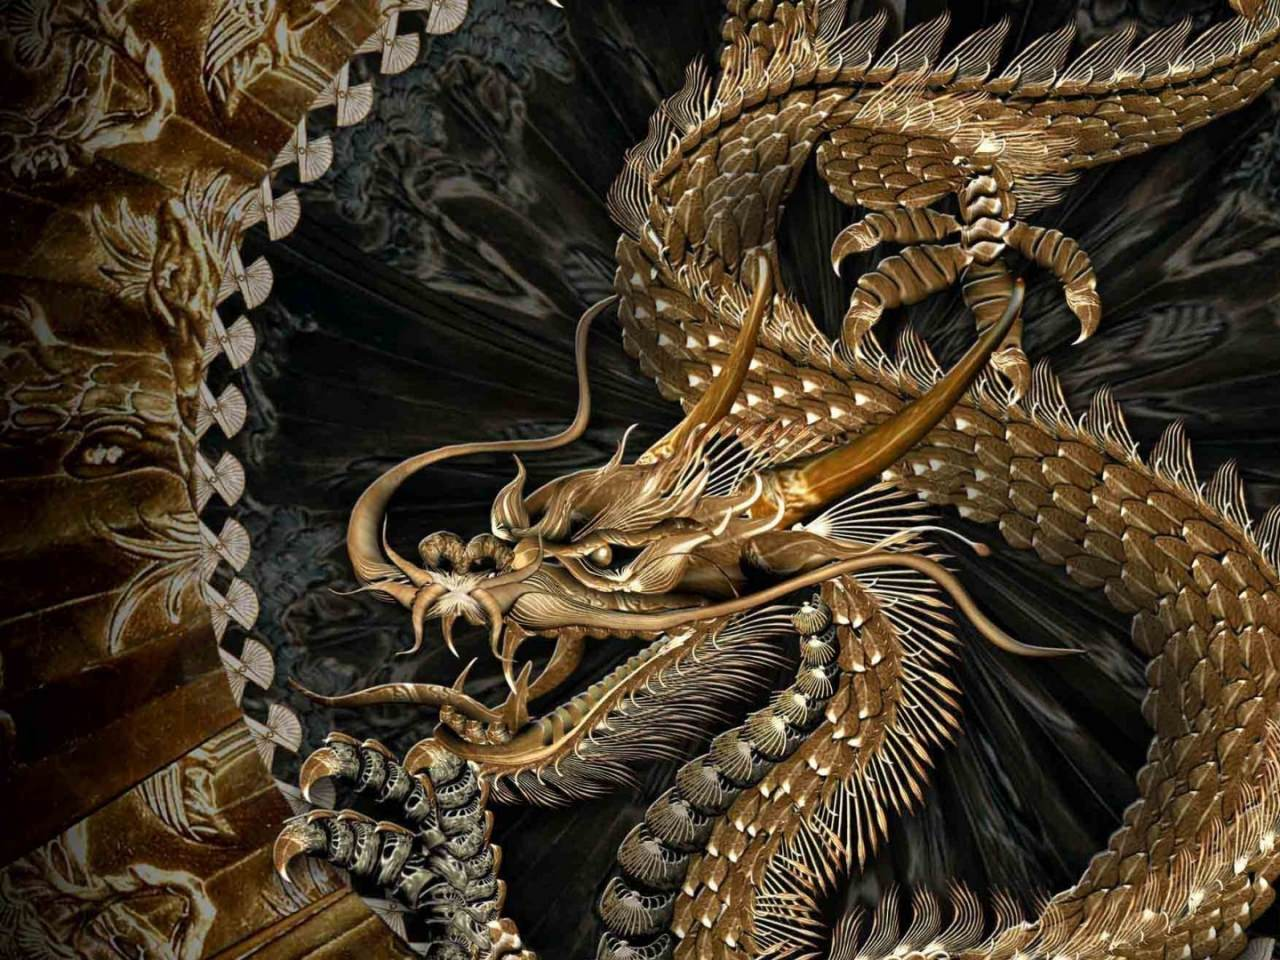 Black And Gold Dragon Wallpapers Top Free Black And Gold Dragon Backgrounds Wallpaperaccess